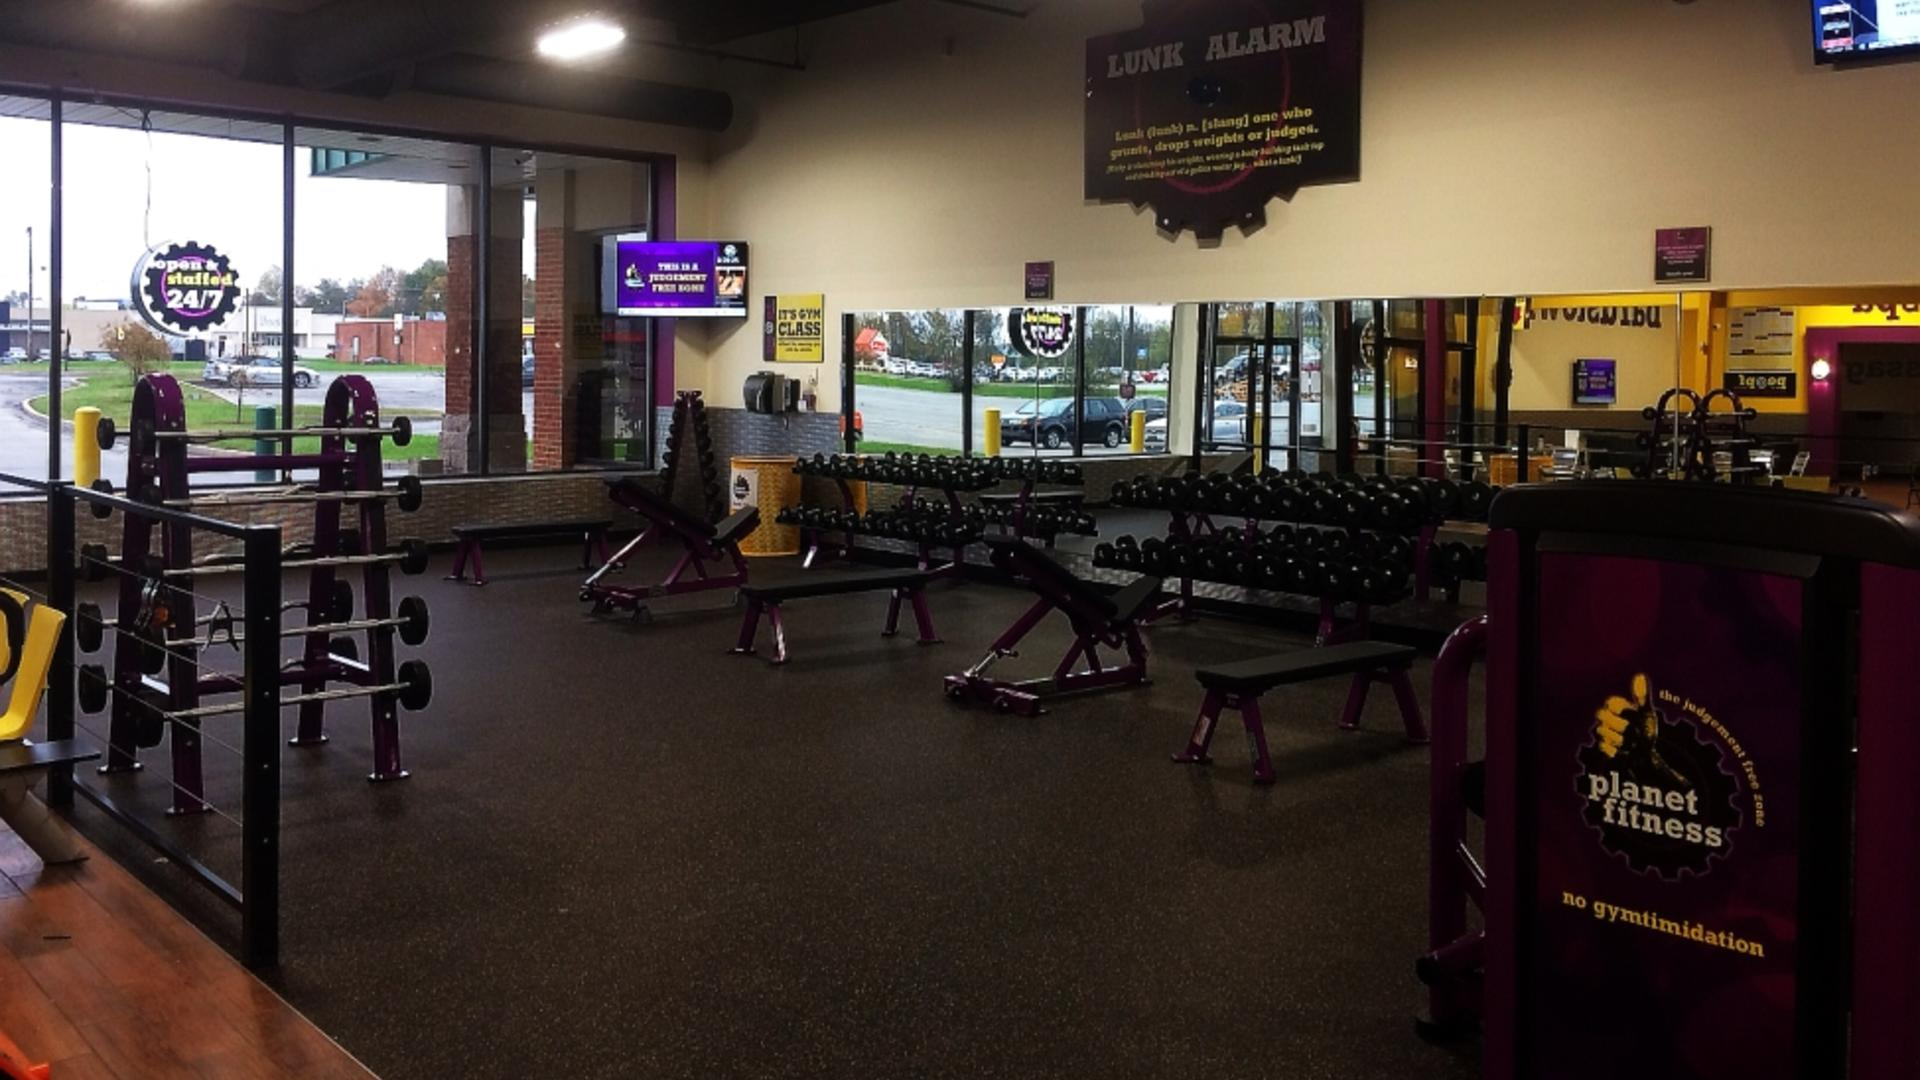 Gym in Bardstown KY  225 Kentucky Home Sq Unit A